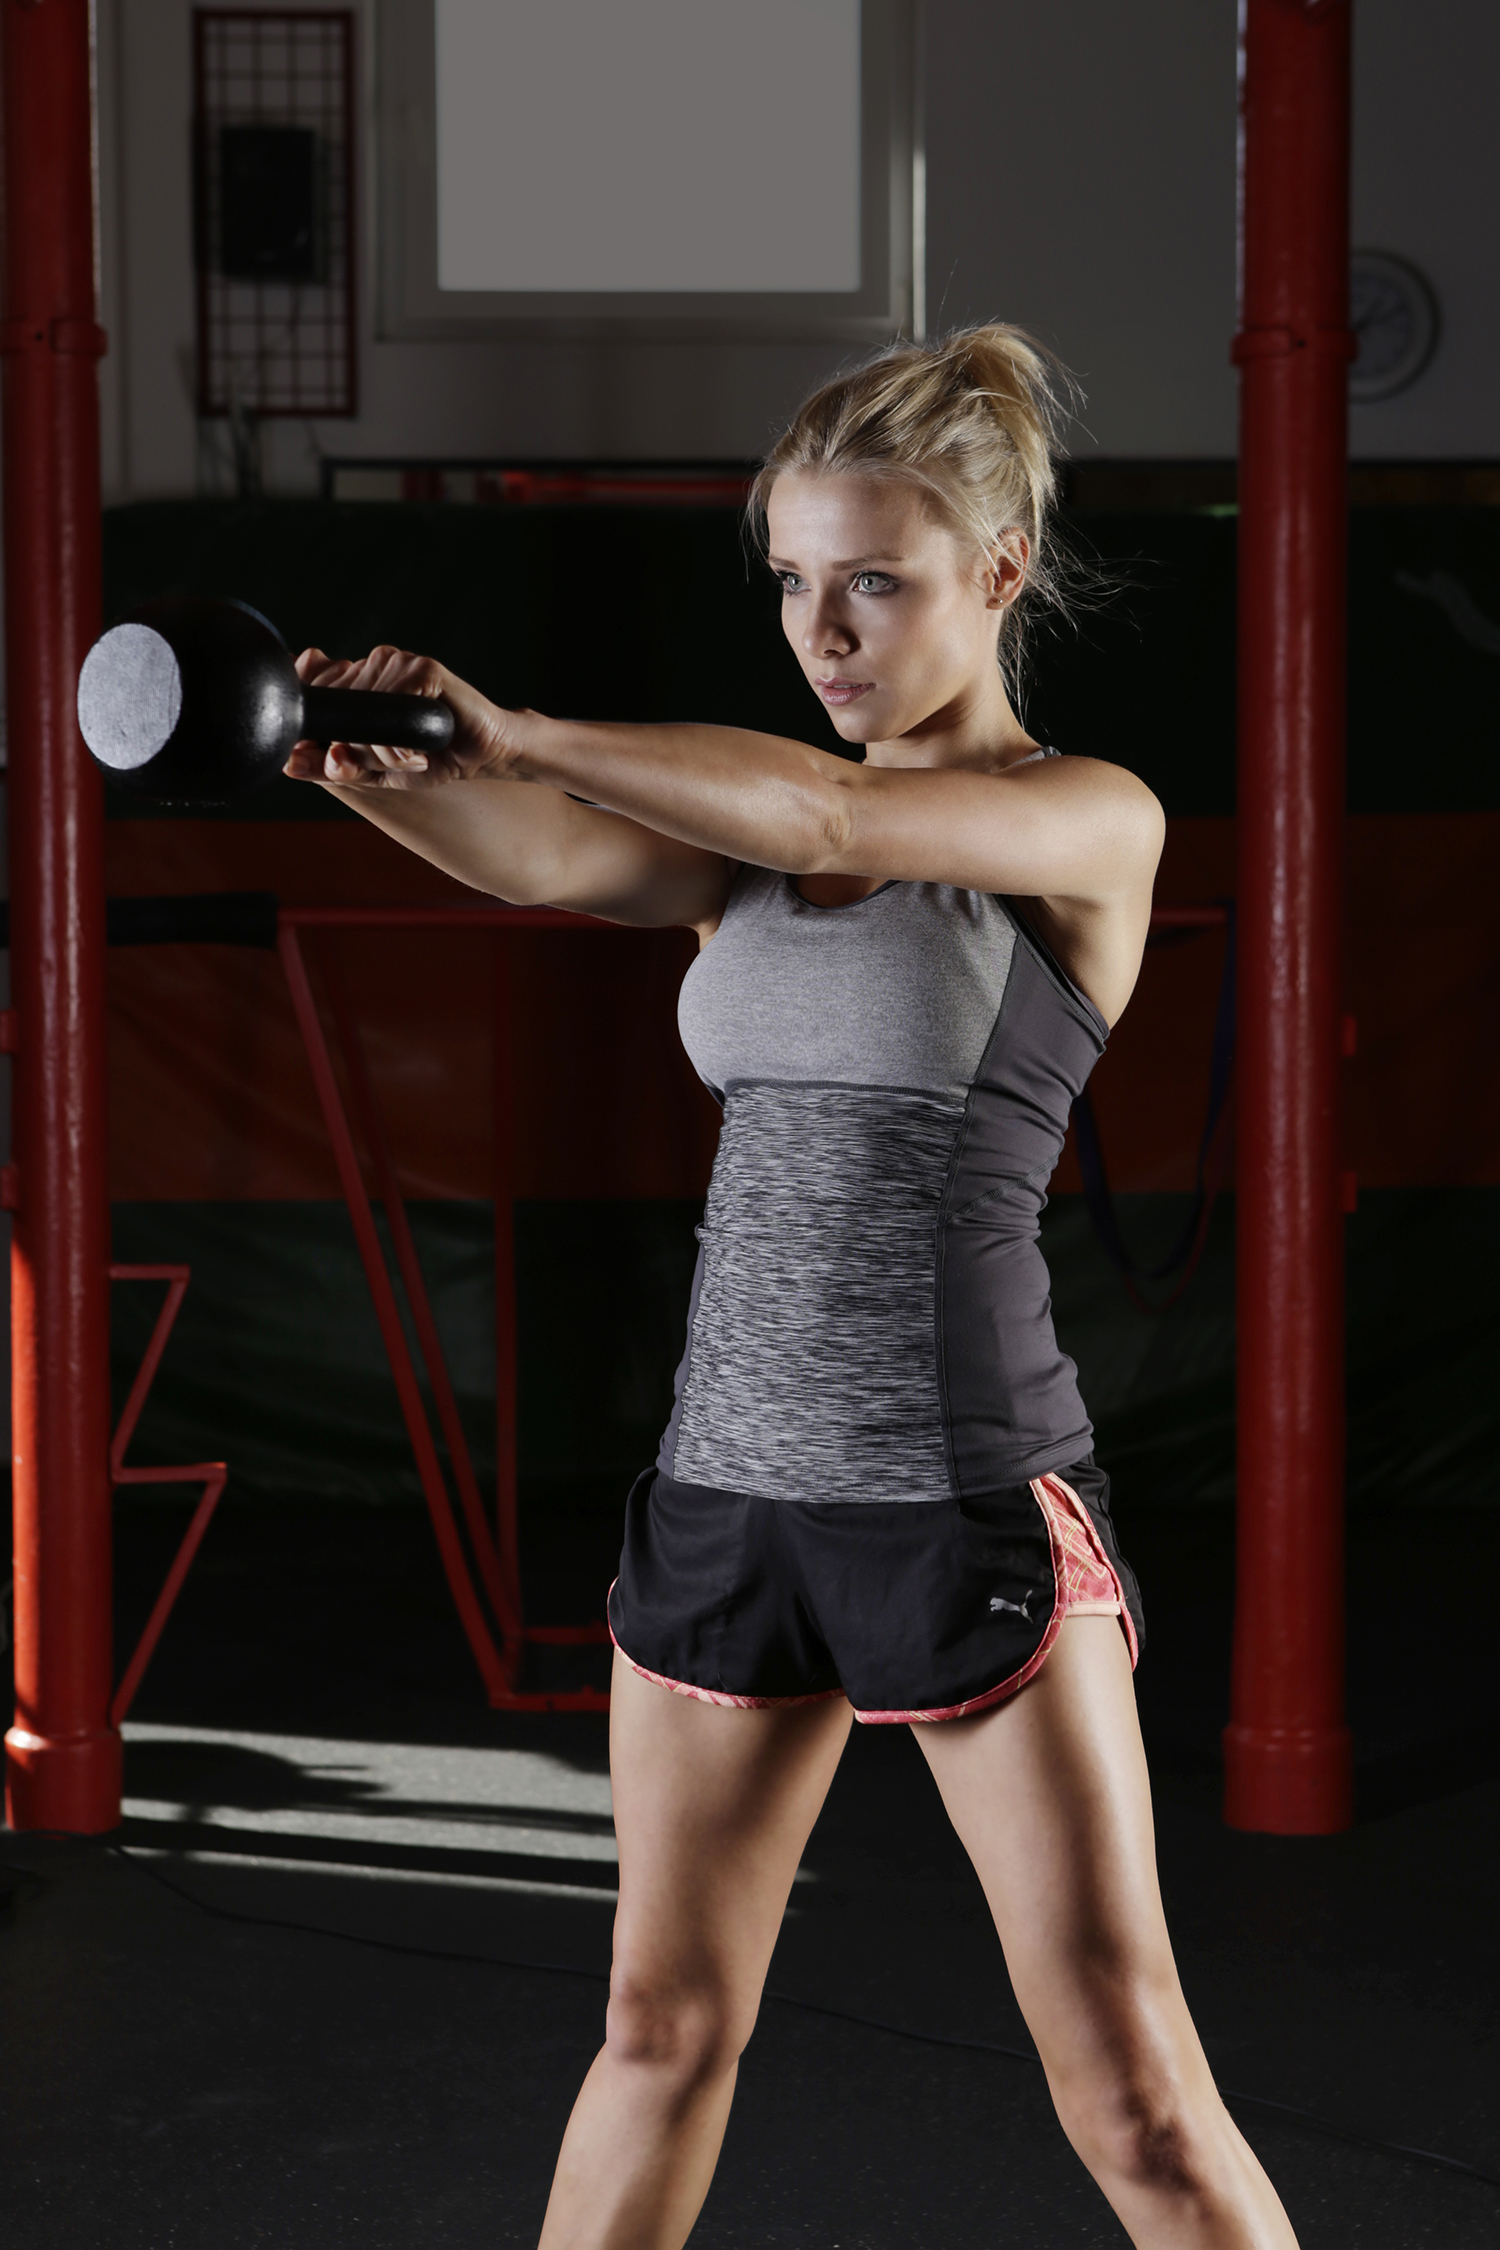 Athletic Woman Doing Kettlebell Swings - High Quality Free ...